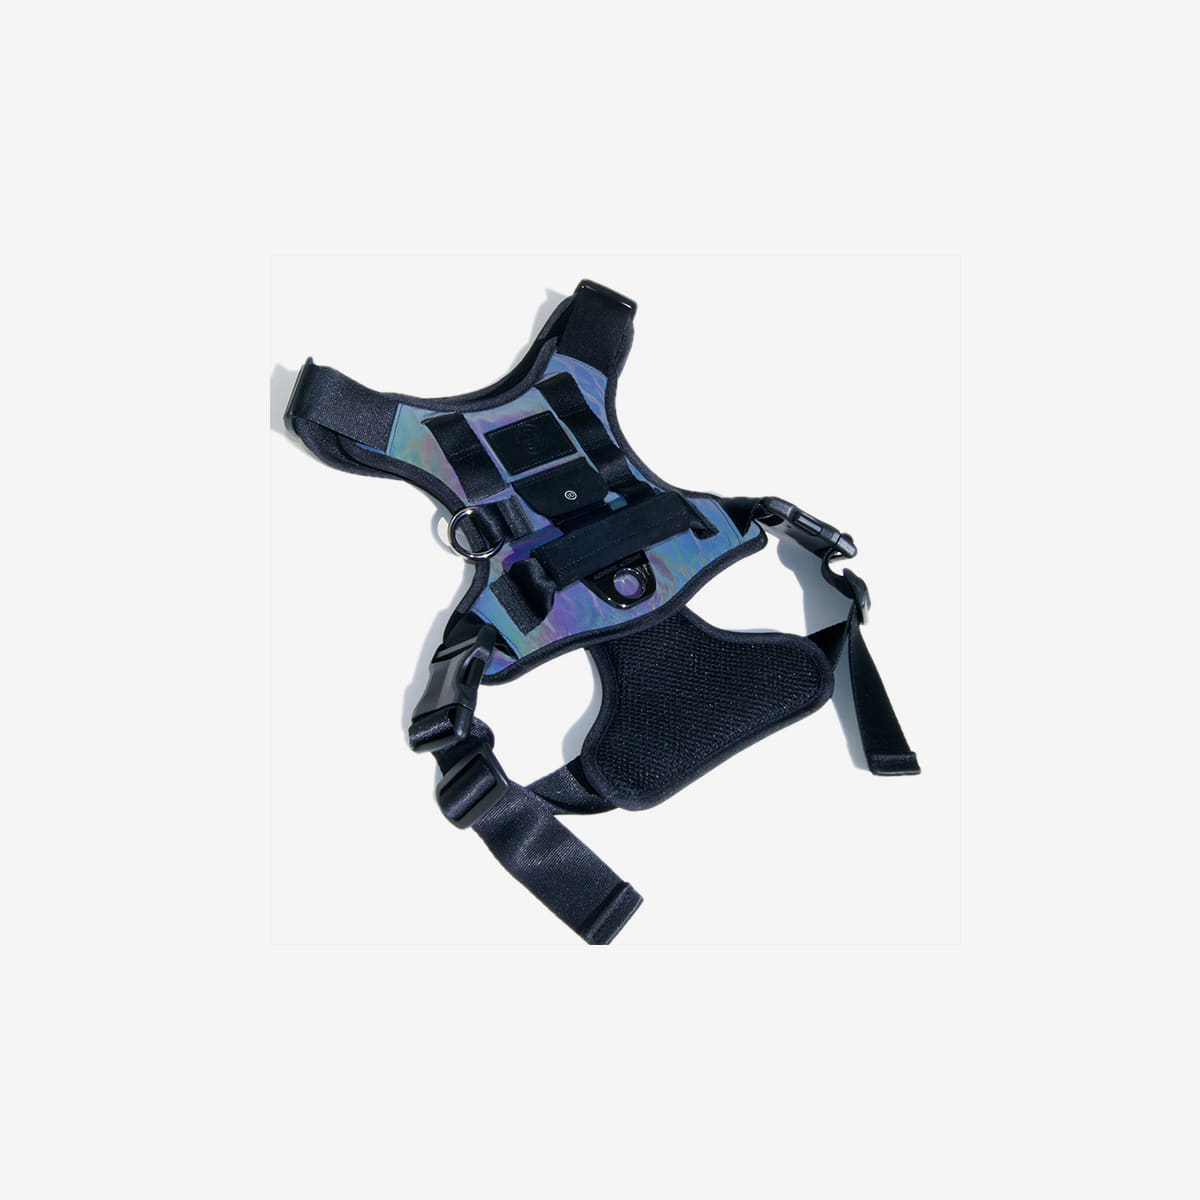 HI-TECH vol.2 REFLECTIVE HARNESS (RAINBOW)